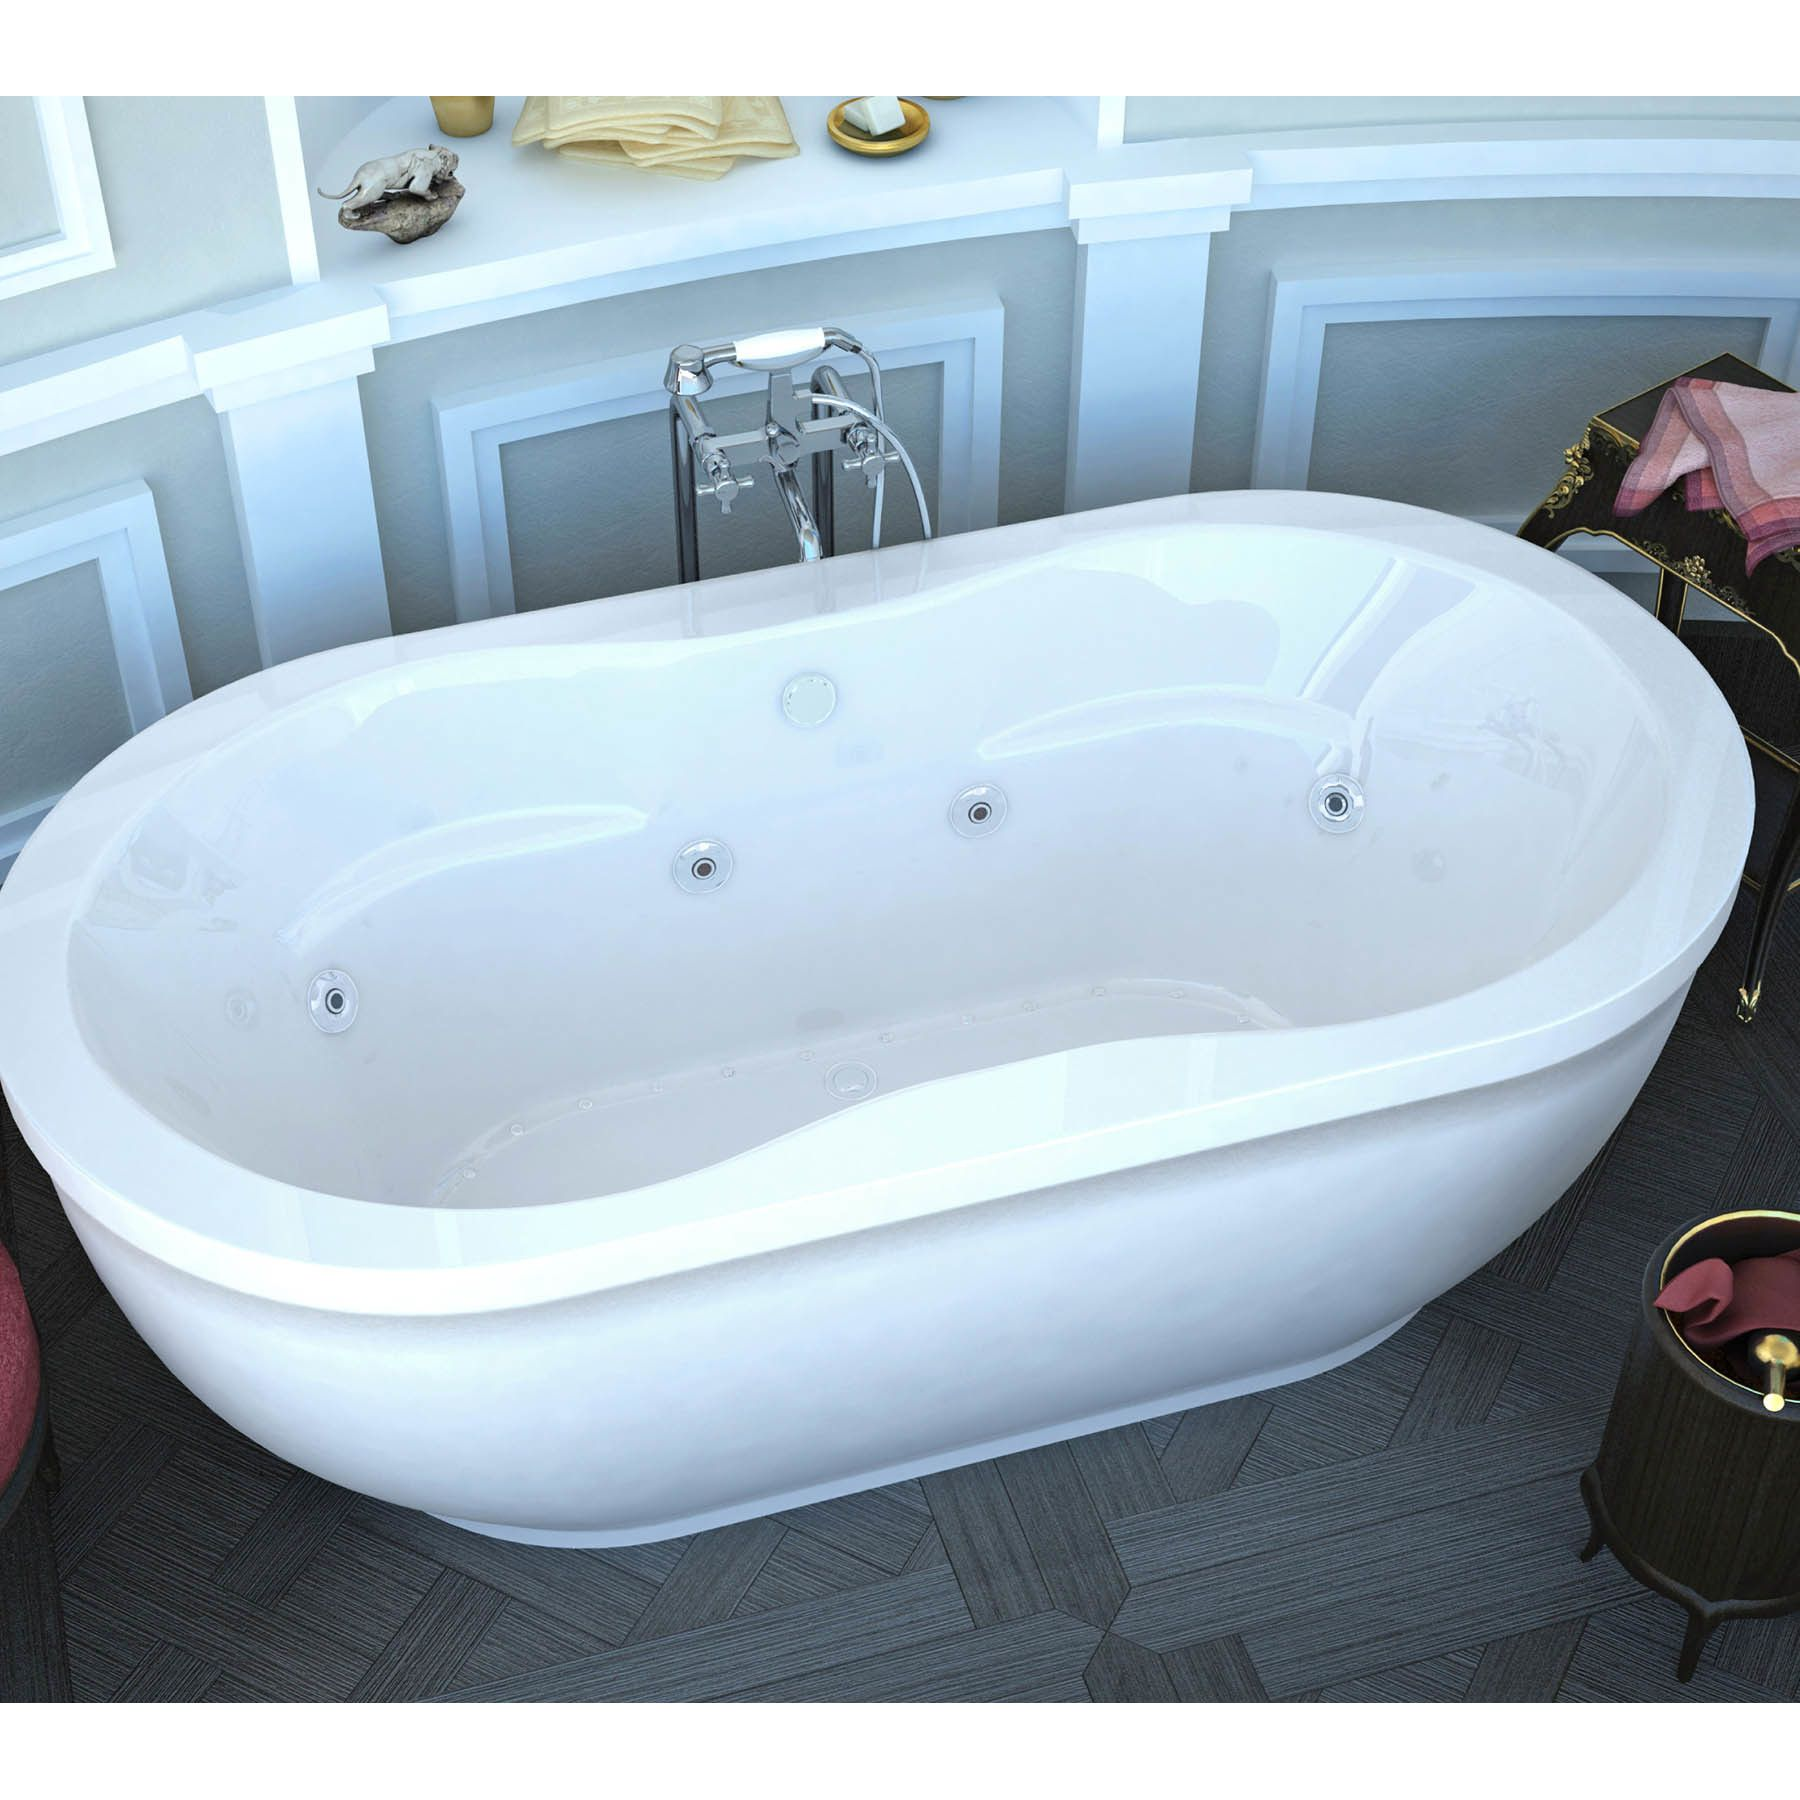 Old Fashioned Bathtub Spa Jet Ideas - Bathtub Design Ideas ...